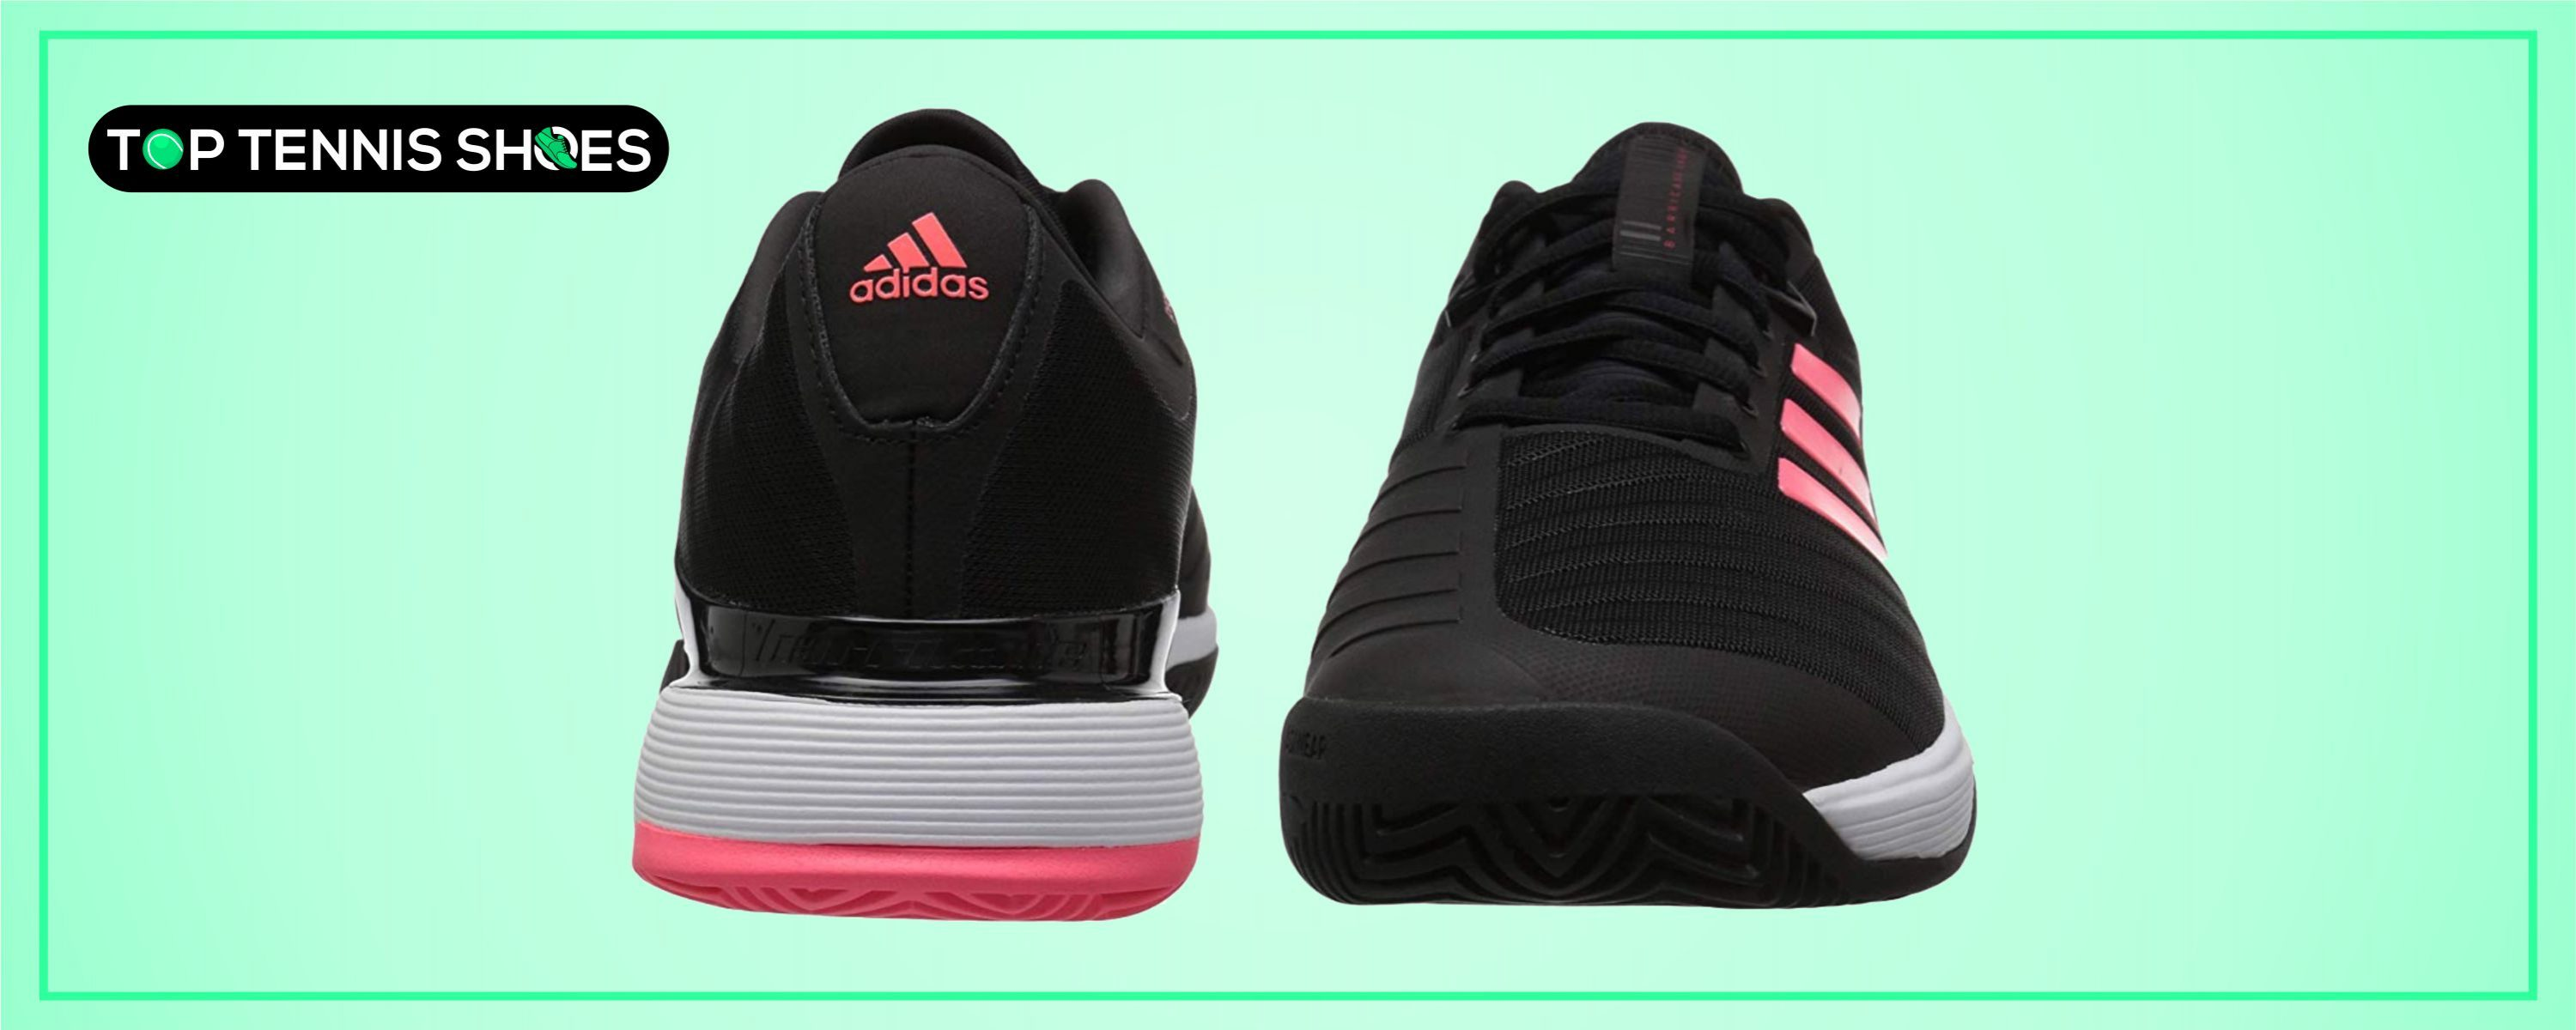 best tennis shoes for high arches 2019